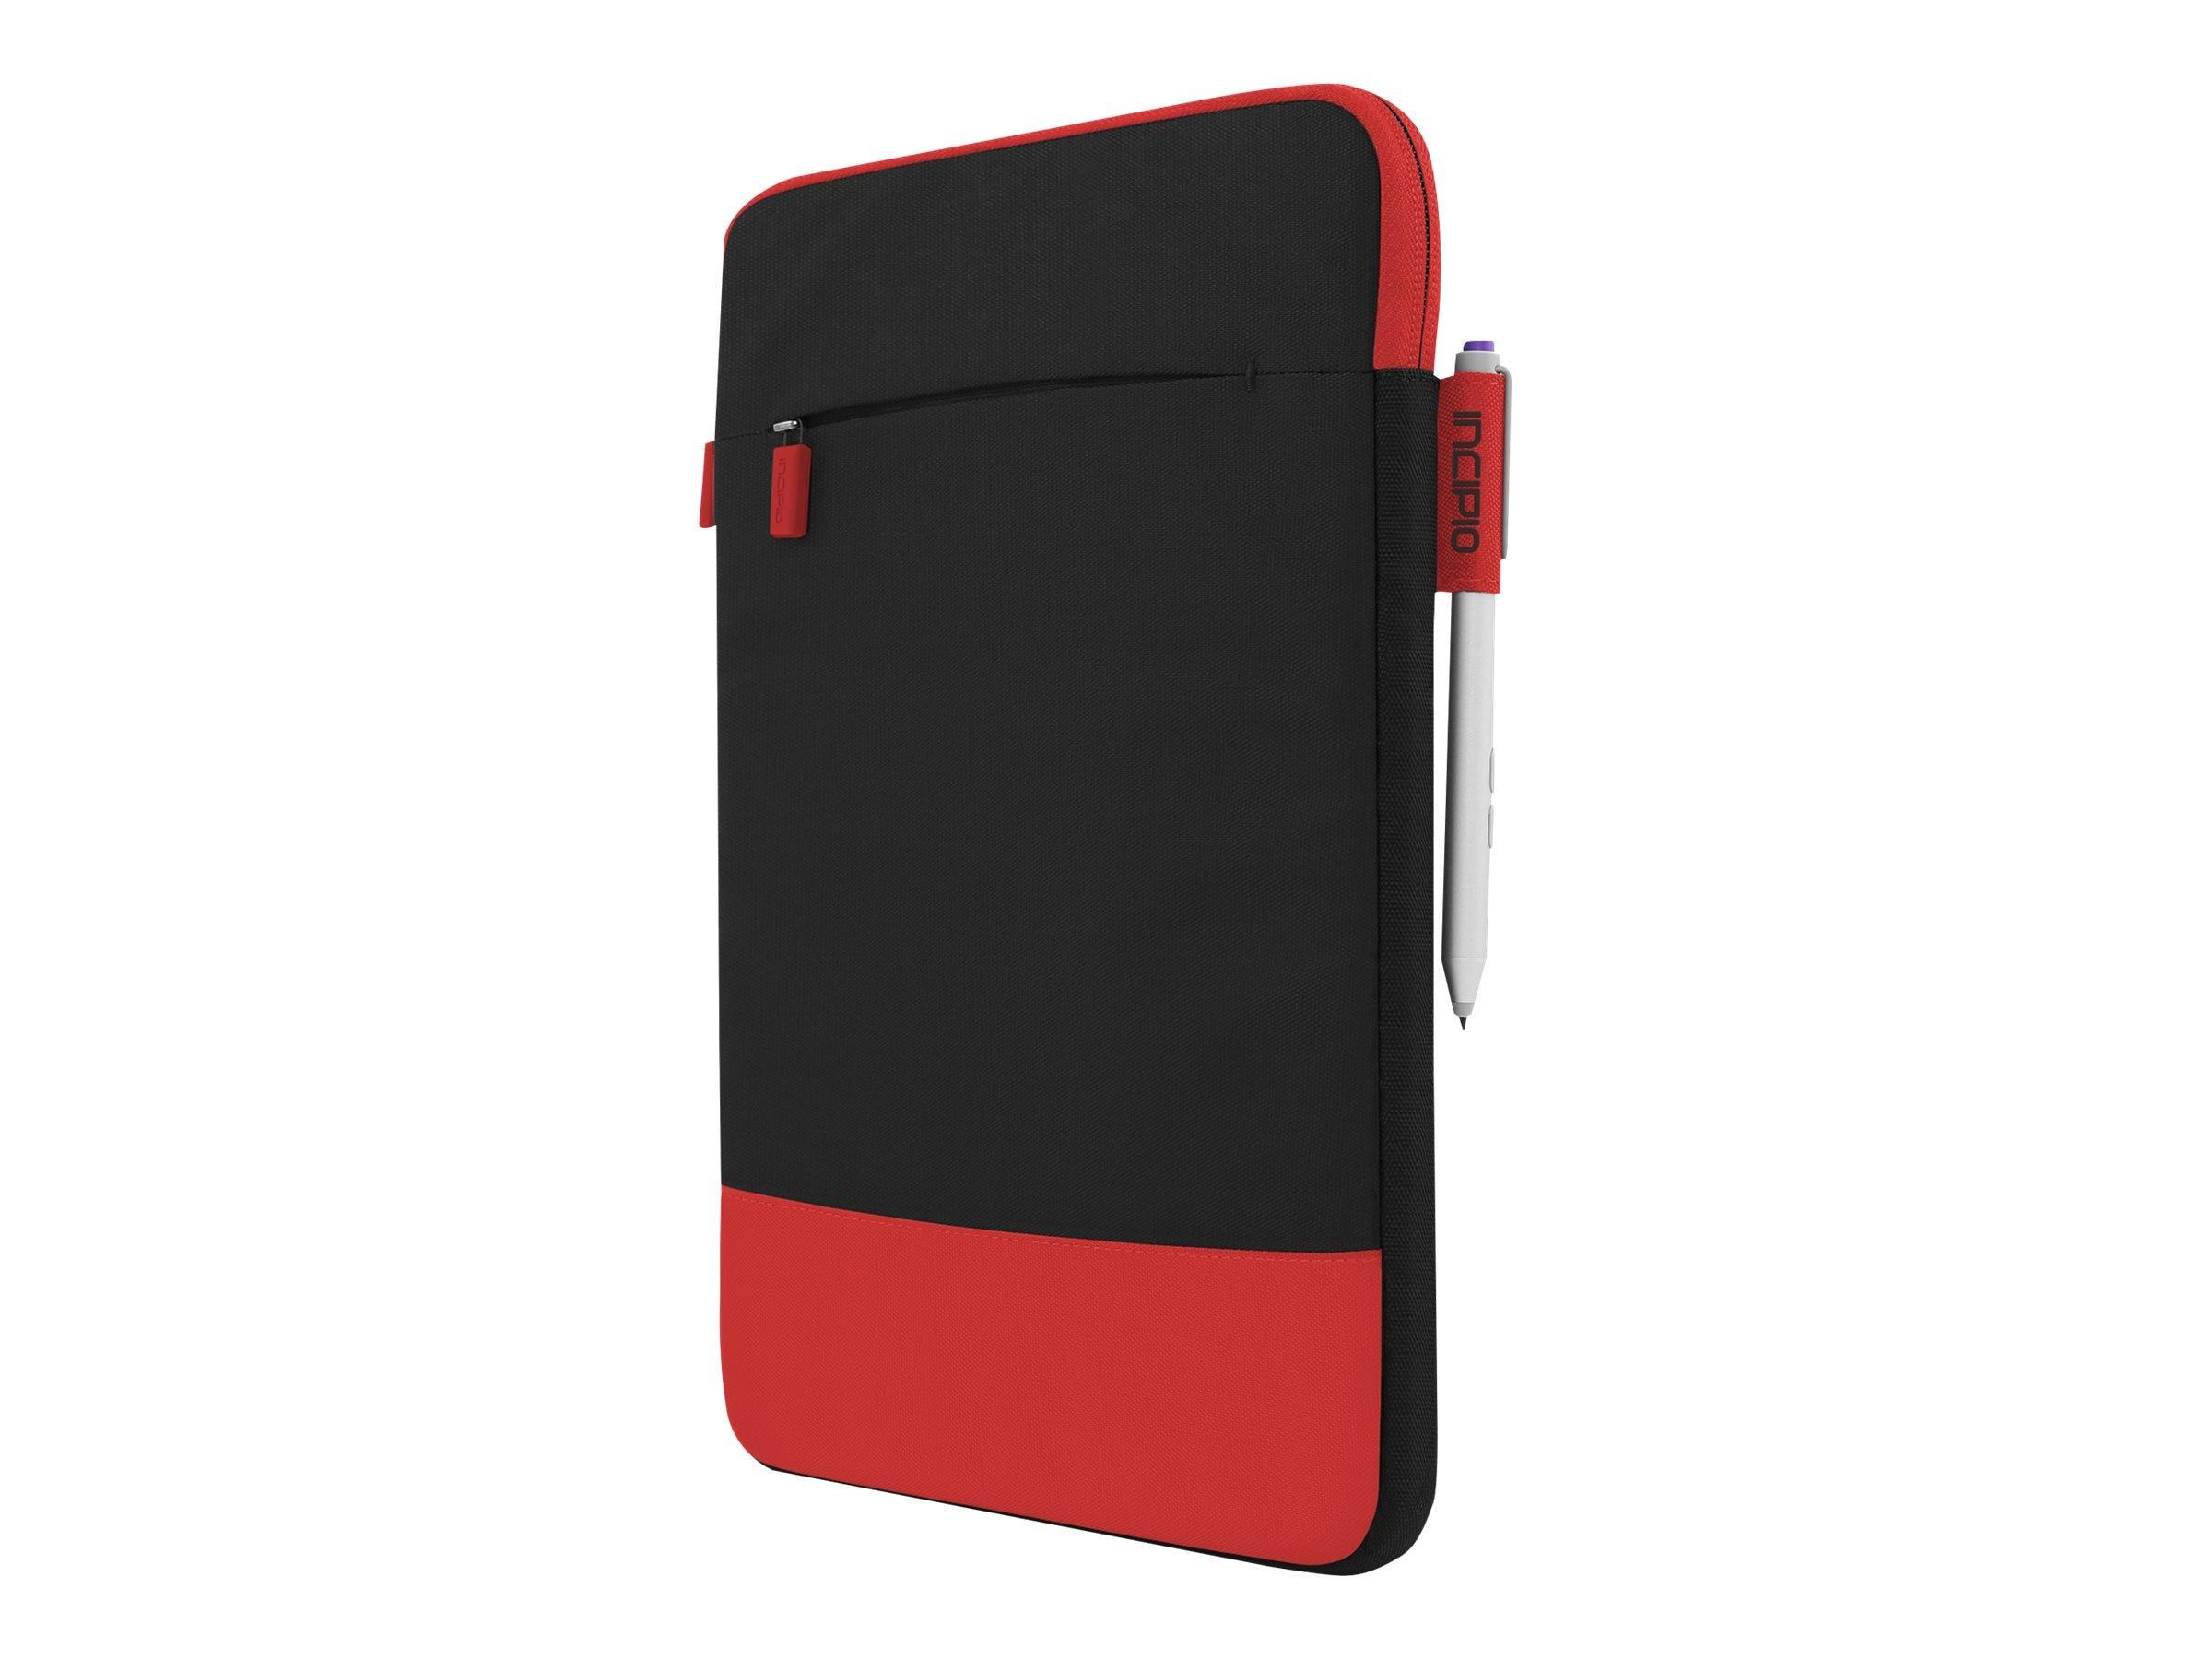 Incipio Asher Sleeve Premium Nylon Sleeve for 10 11 Devices, Black Red